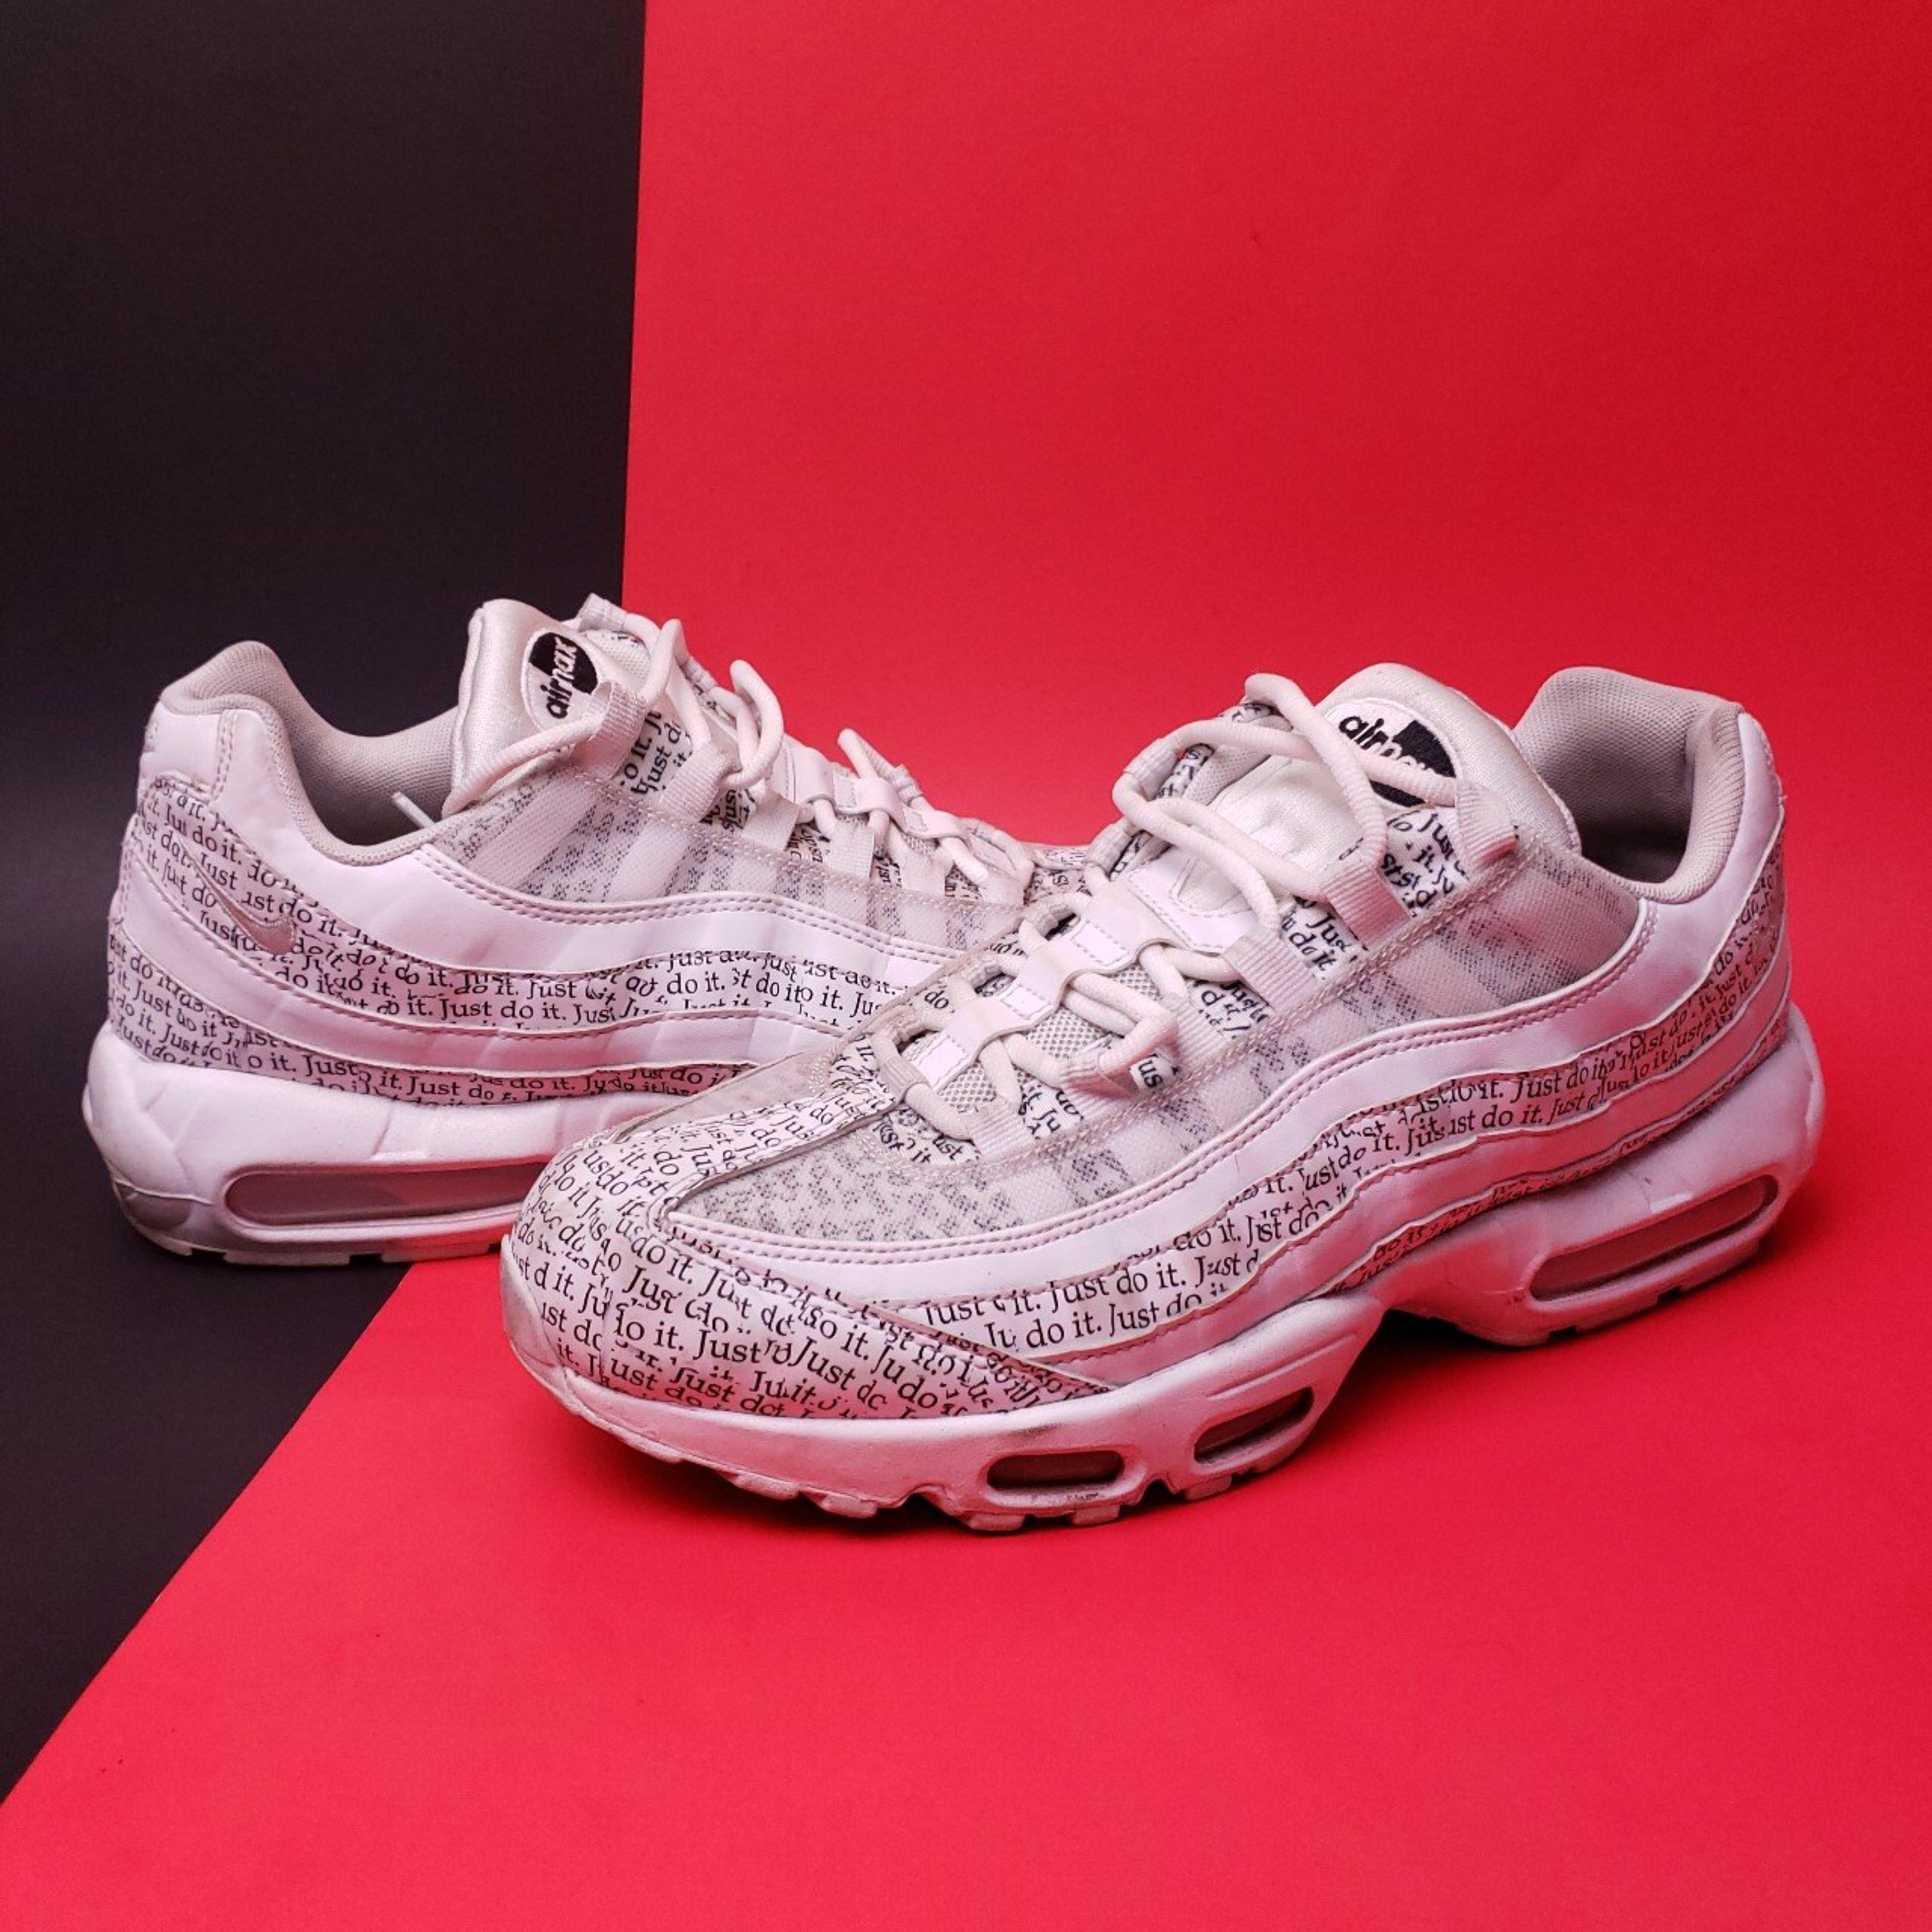 the best attitude eedd9 314c4 Nike Air Max 95 Just Do It